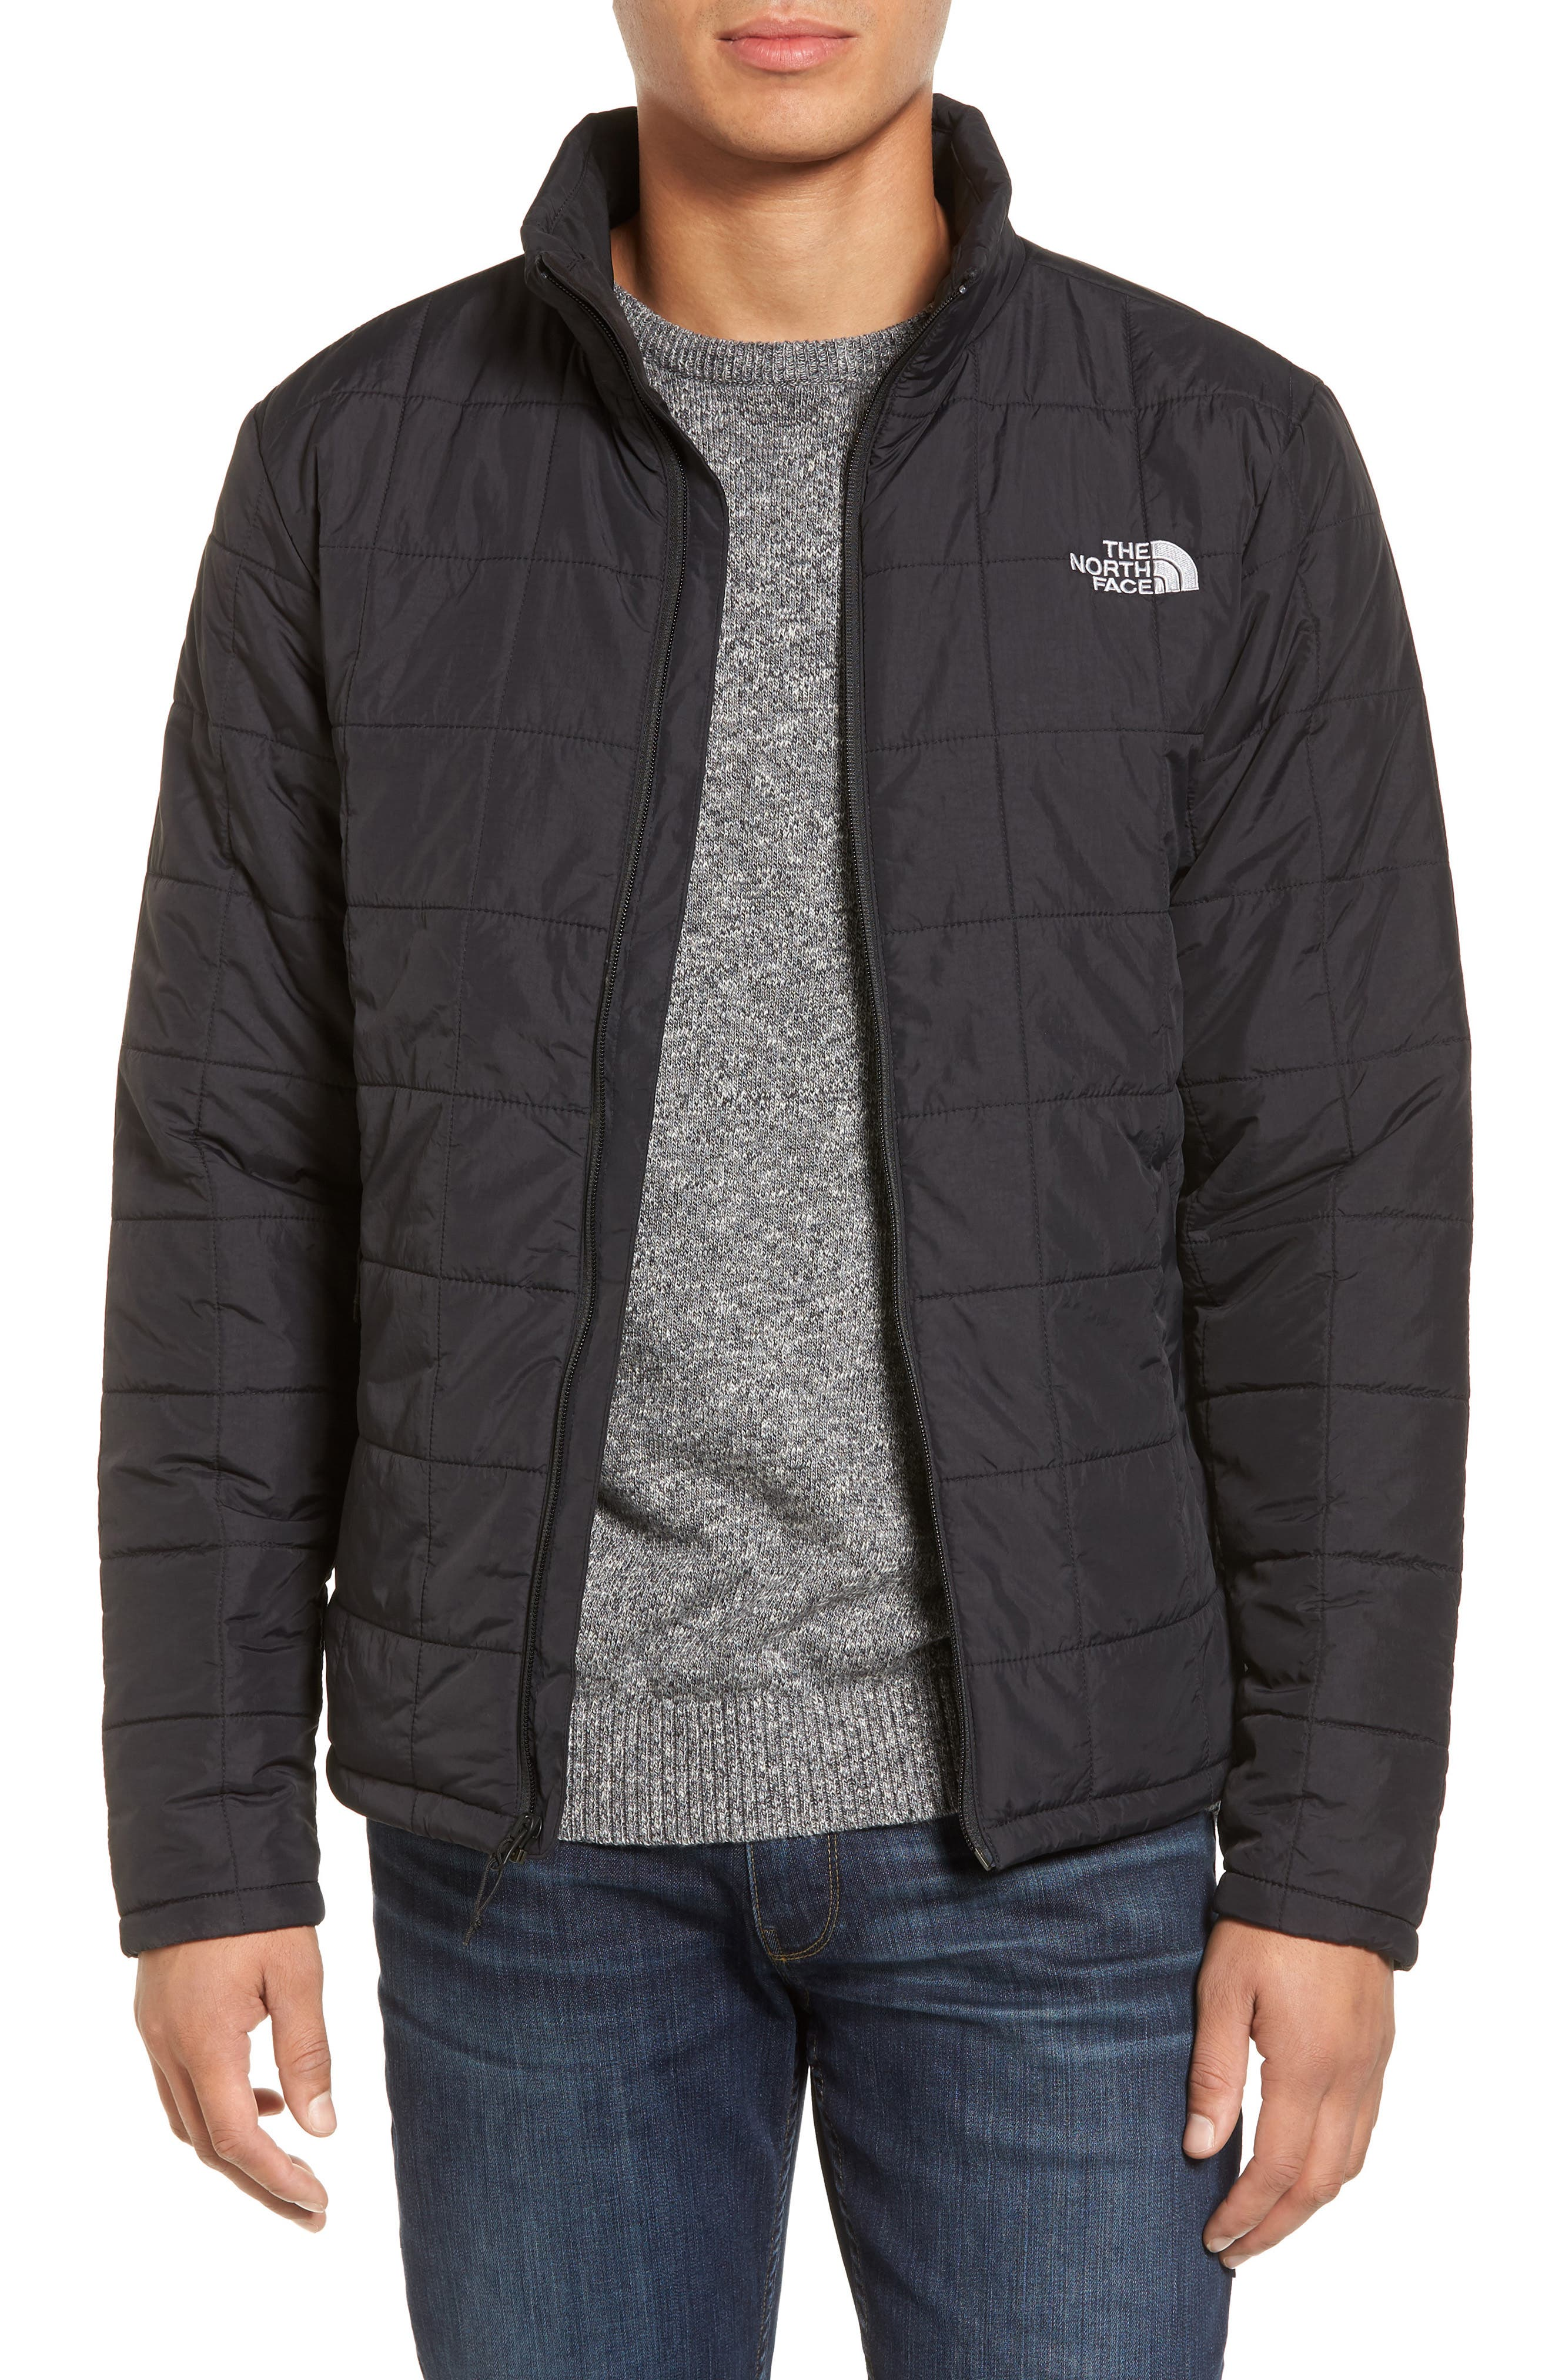 THE NORTH FACE Harway Heatseaker<sup>™</sup> Jacket, Main, color, 001